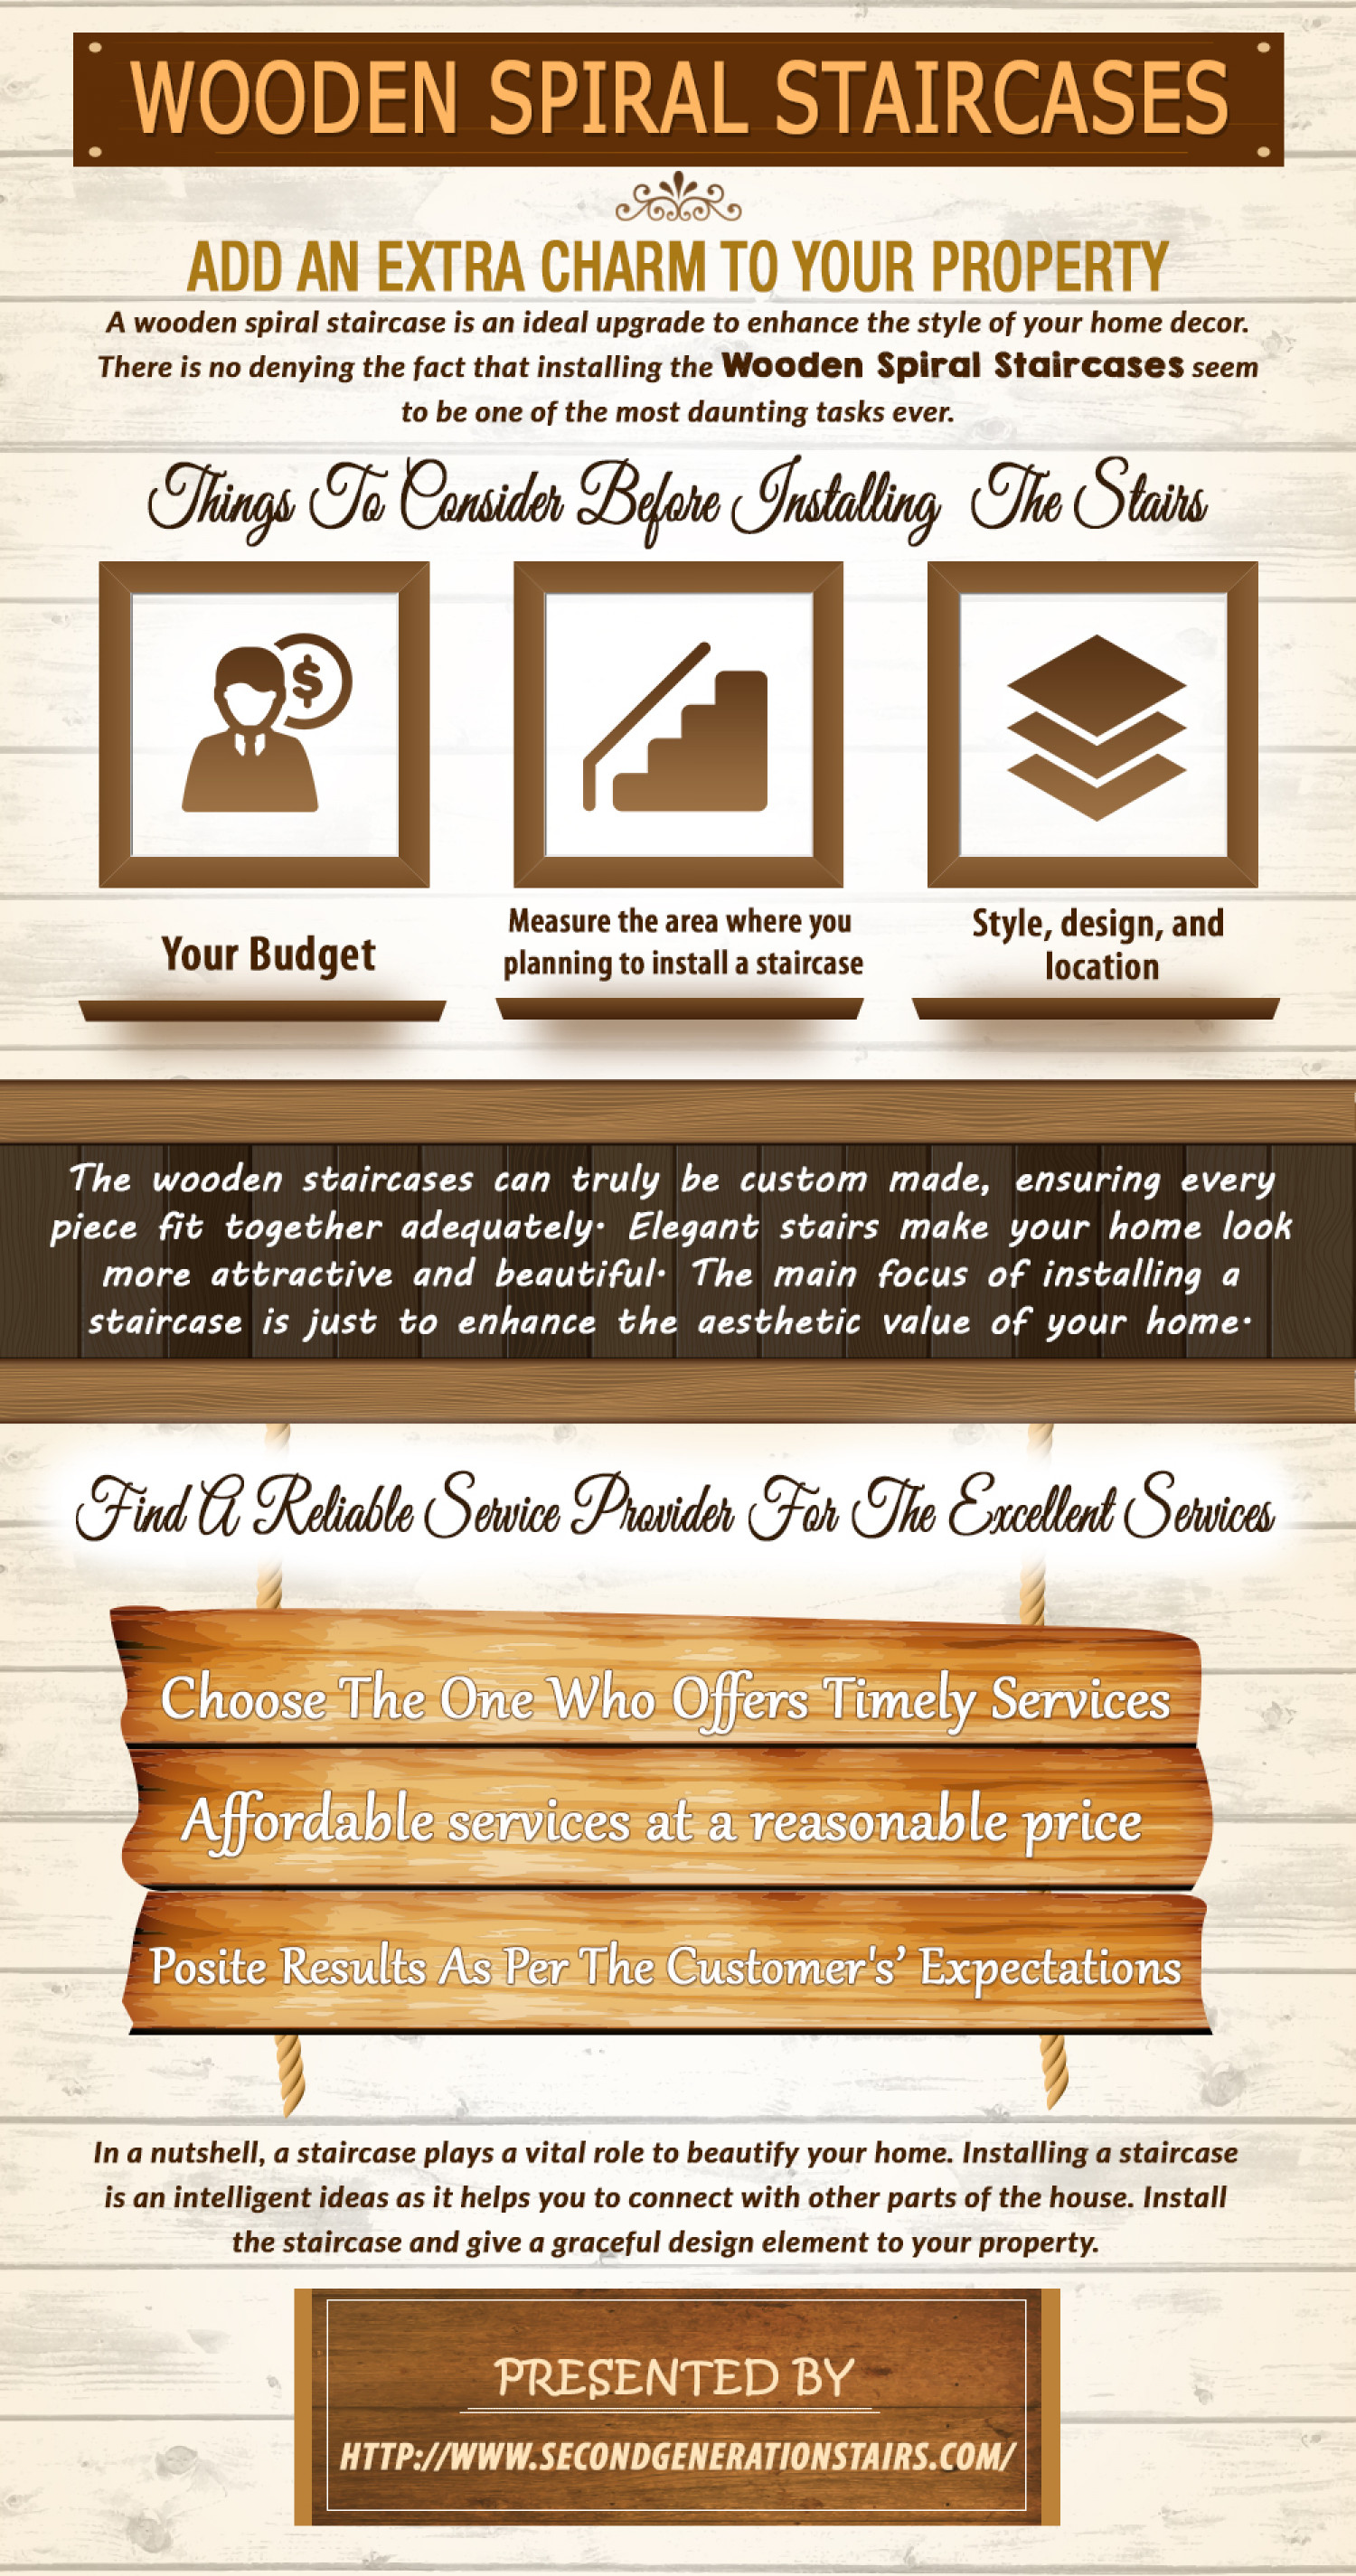 Wooden Spiral Staircase add extra charm to your Property Infographic